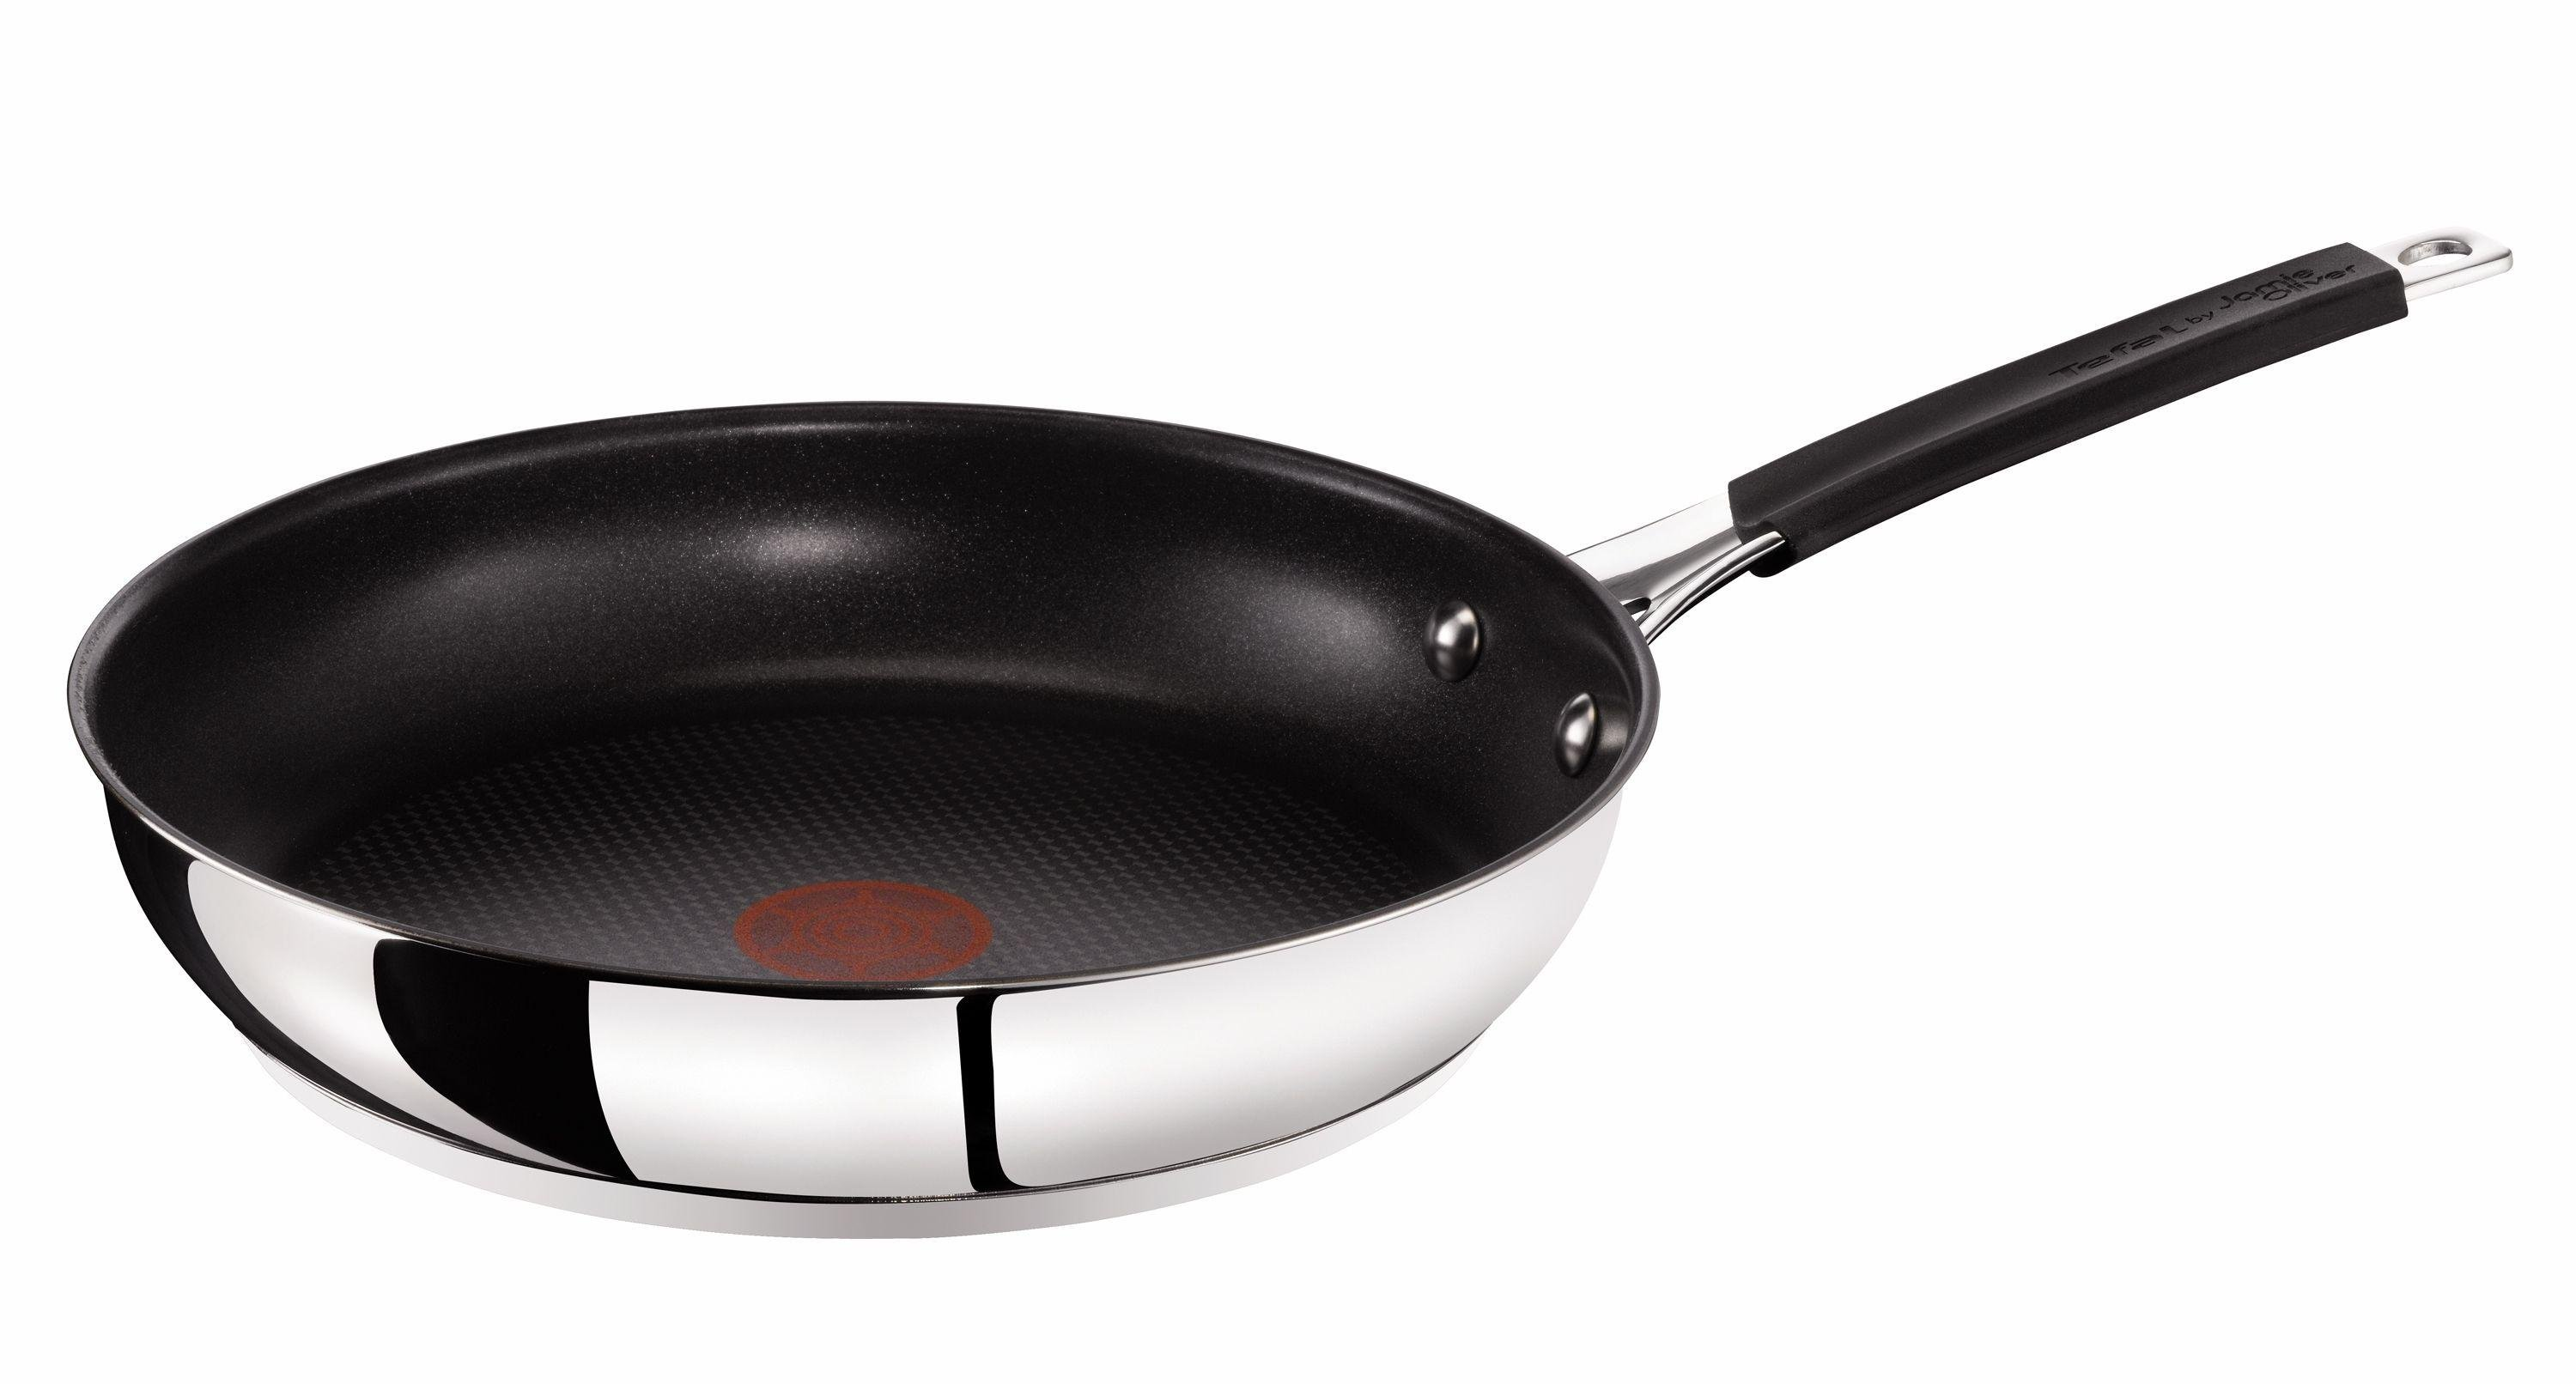 Image of Jamie Oliver by Tefal - Stainless Steel 24cm Frying Pan